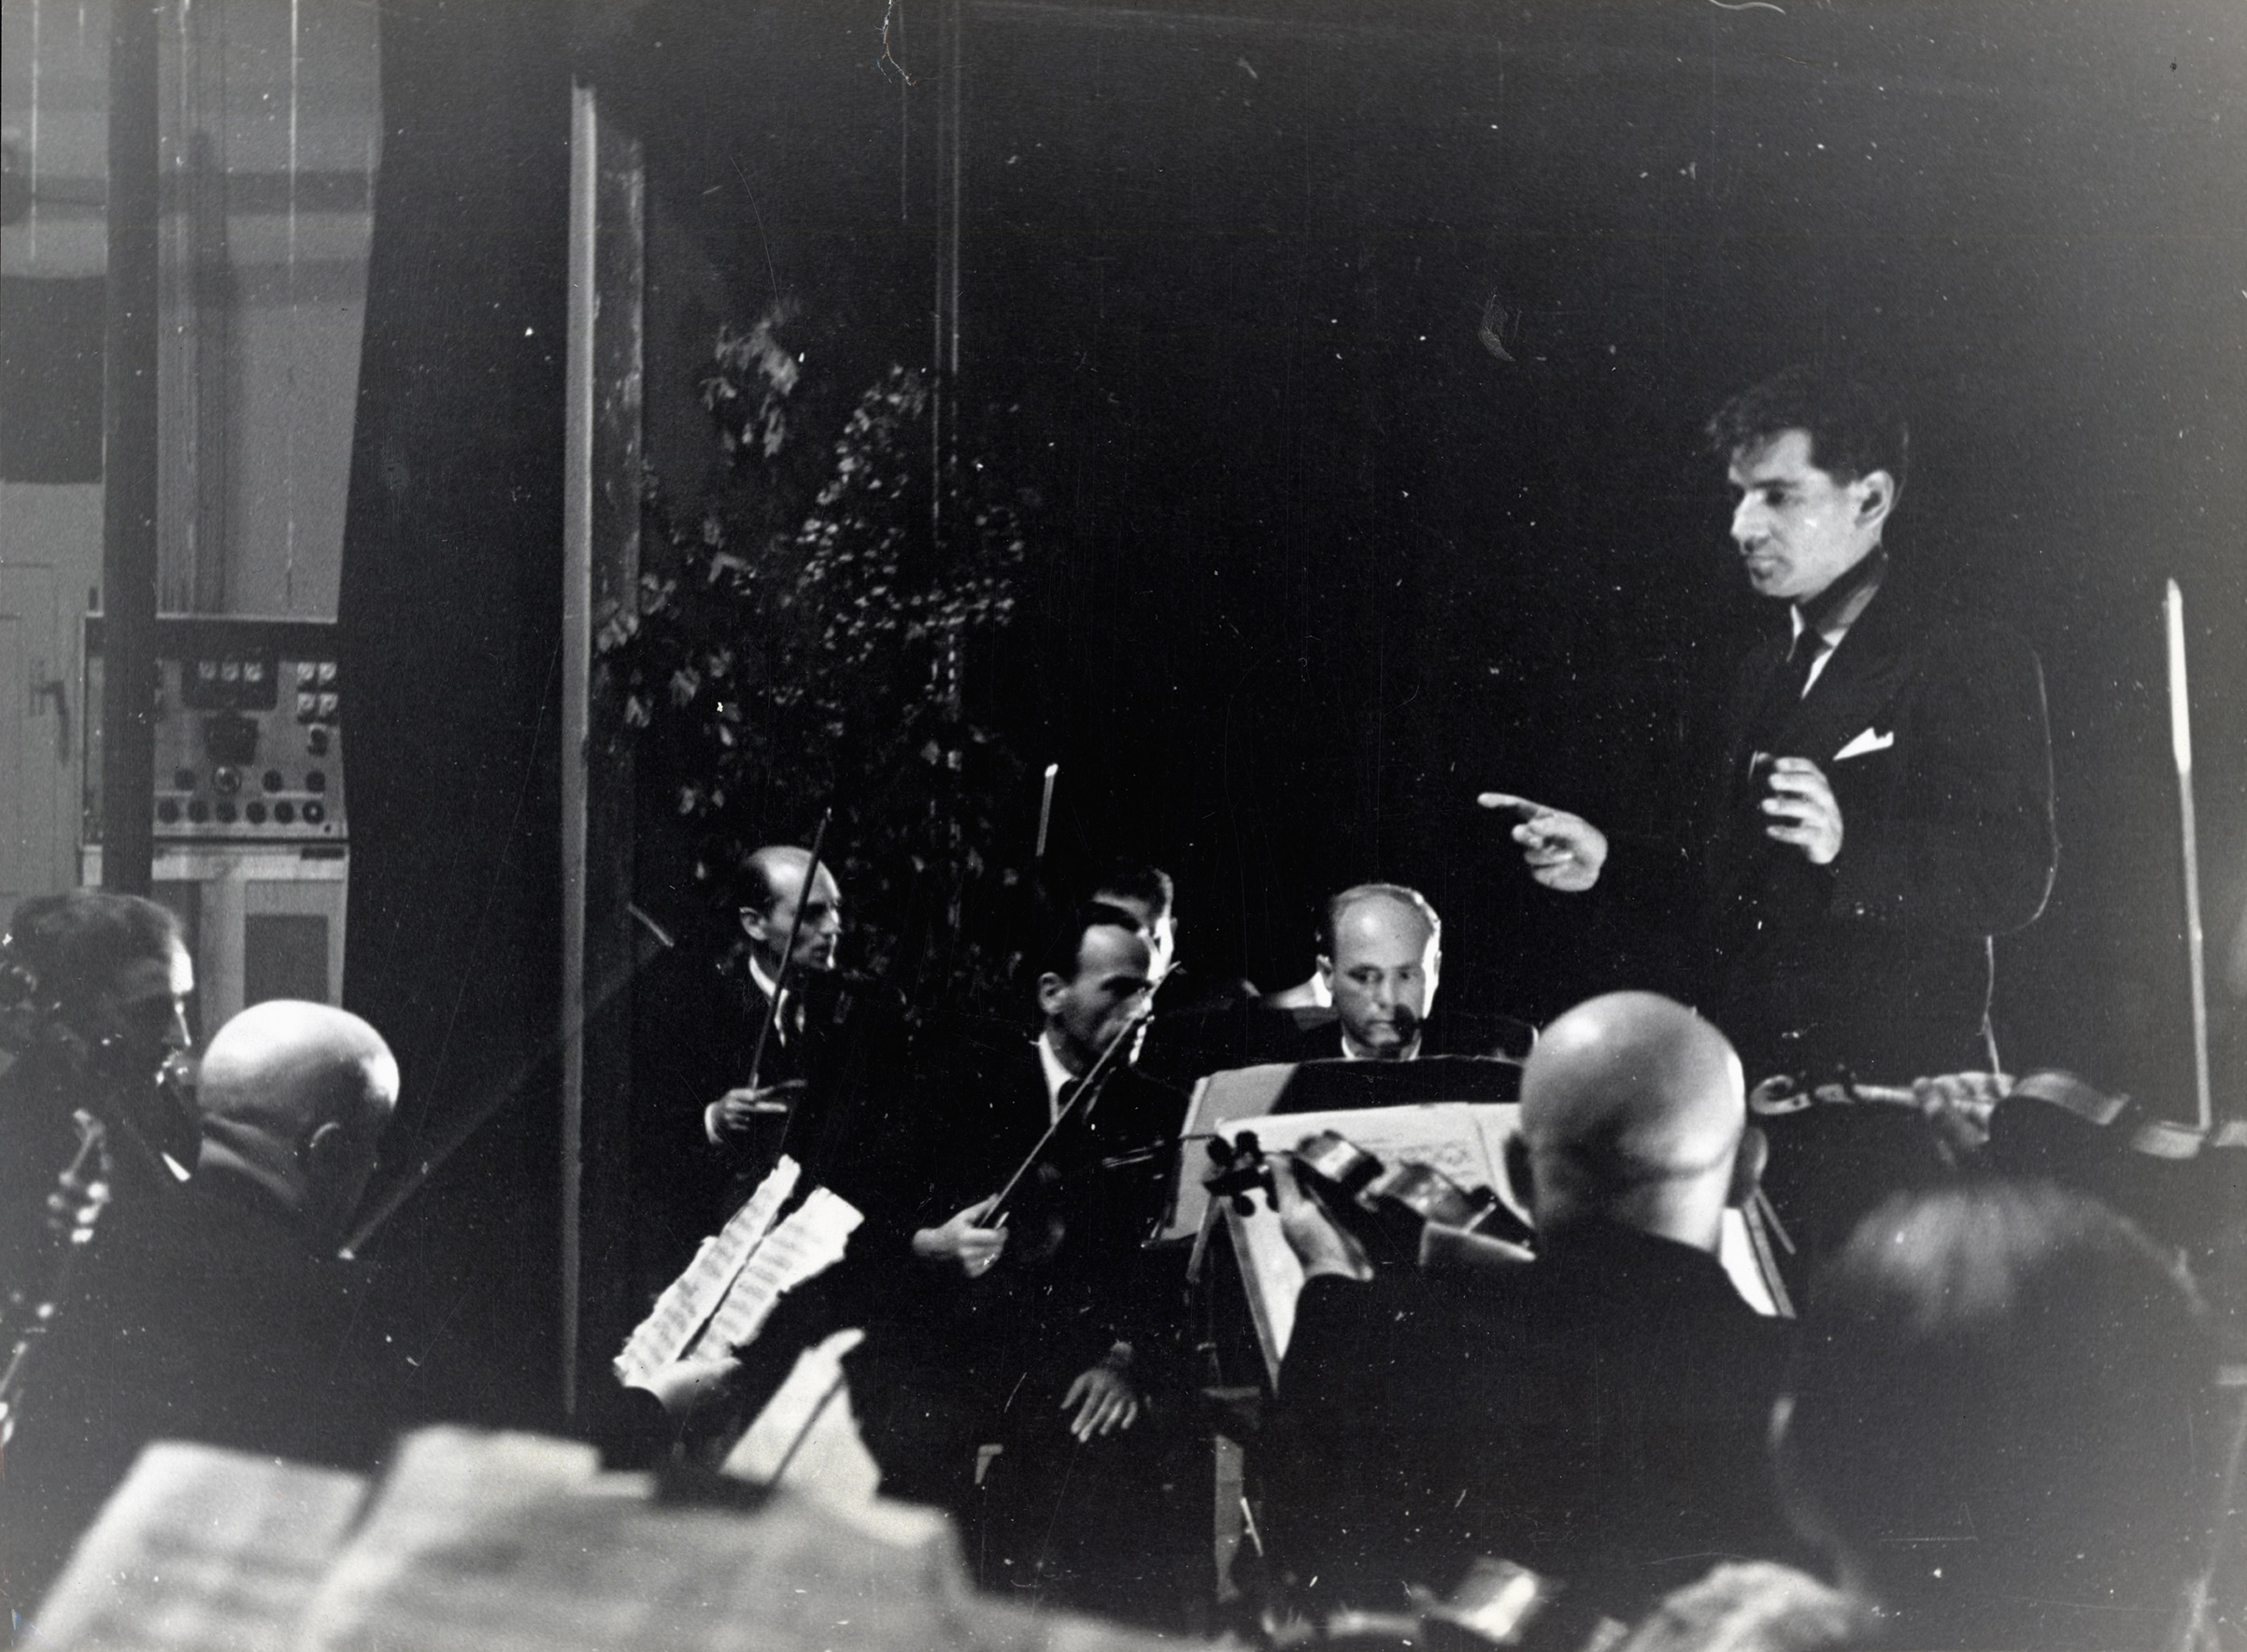 Leonard Bernstein conducting an orchestra of concentration camp survivors for a concert sponsored by the American Jewish Joint Distribution Committee on May 10, 1948, in Munich.